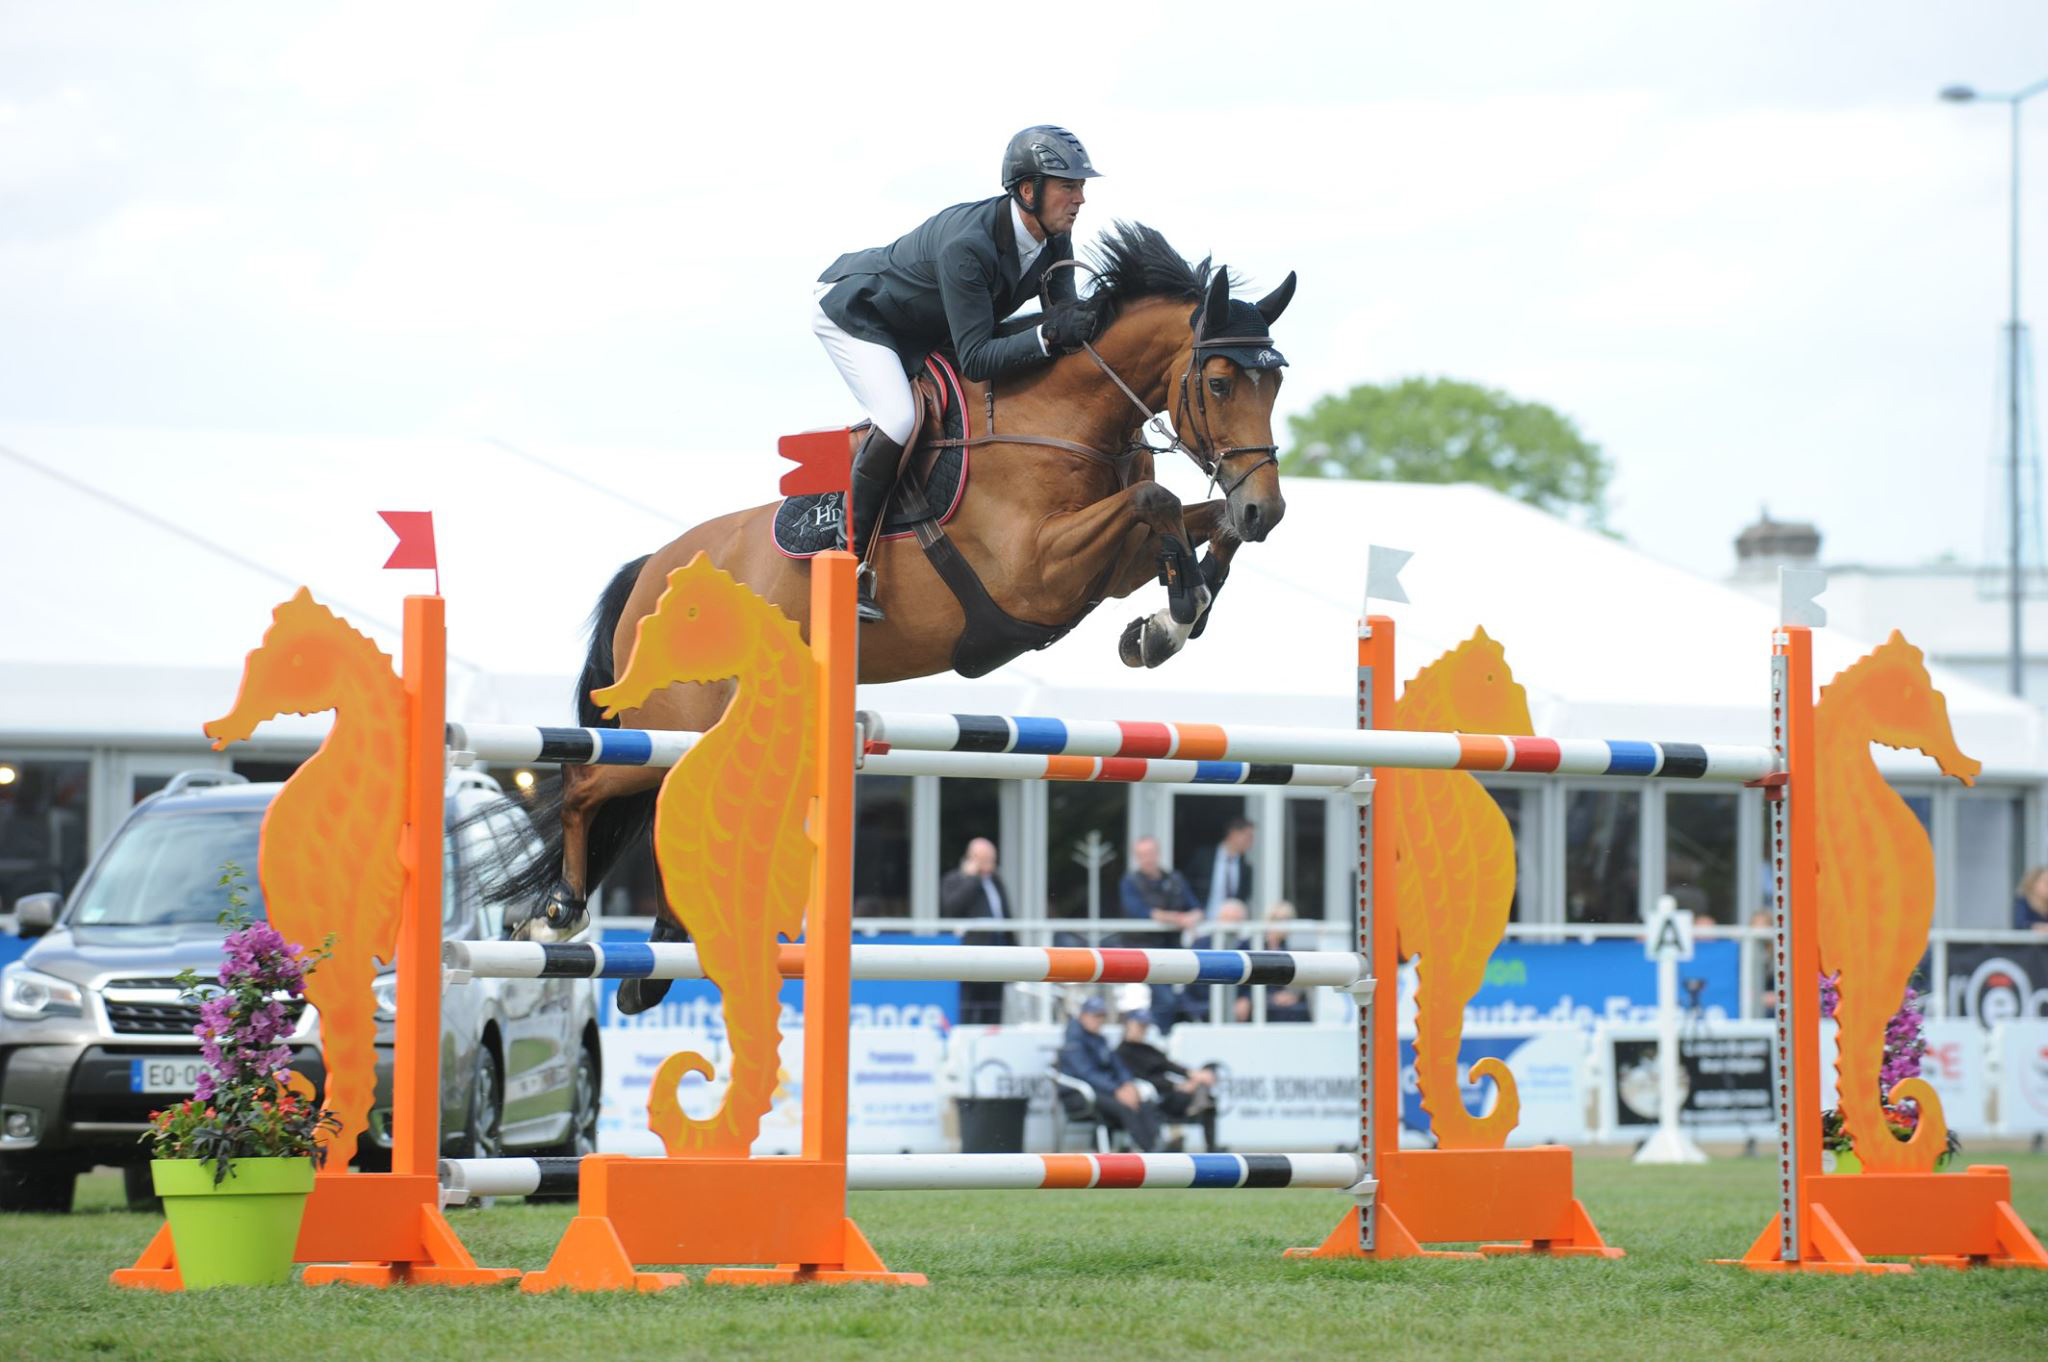 jumping-maubeuge-concours-image